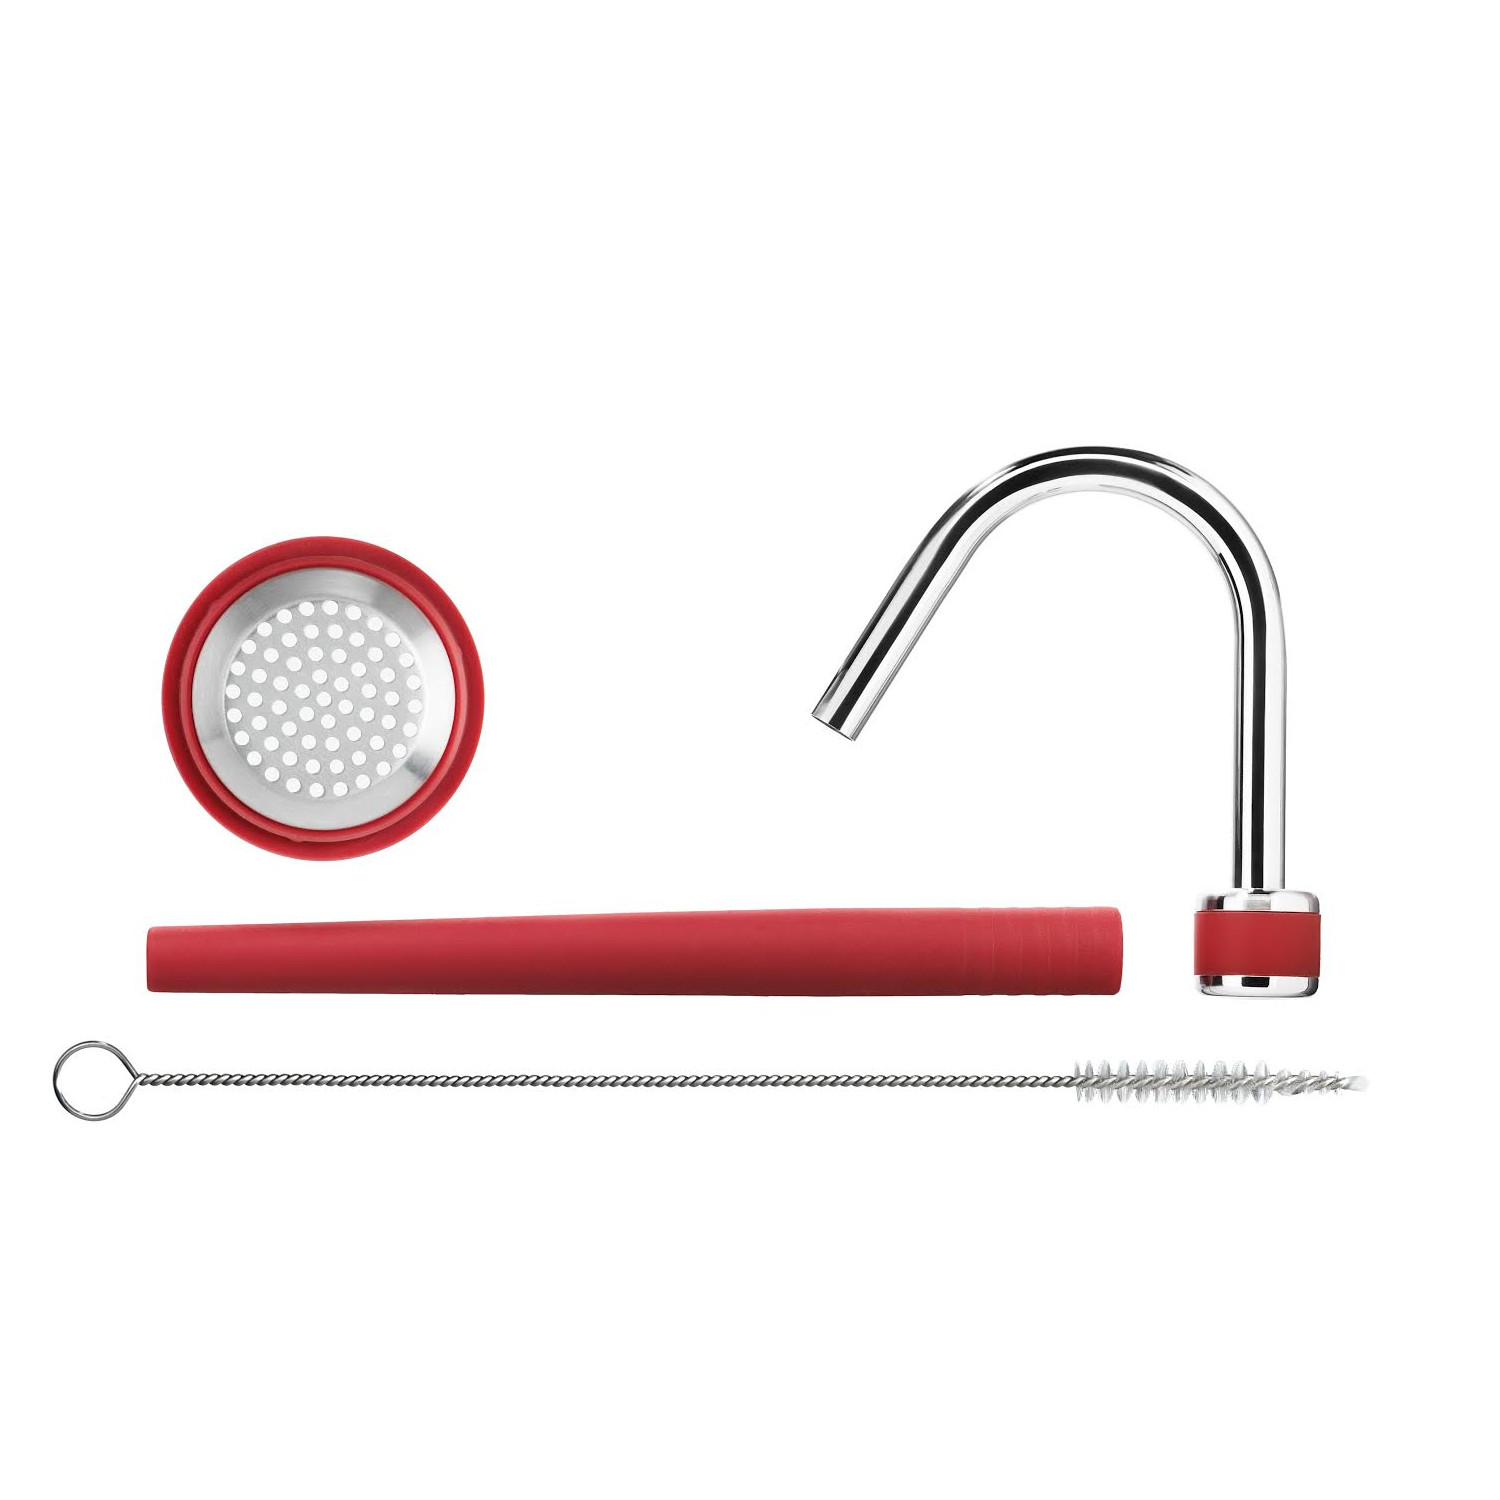 iSi Red Rapid Infusion Tool Kit for Gourmet Whip! Cream Whipper